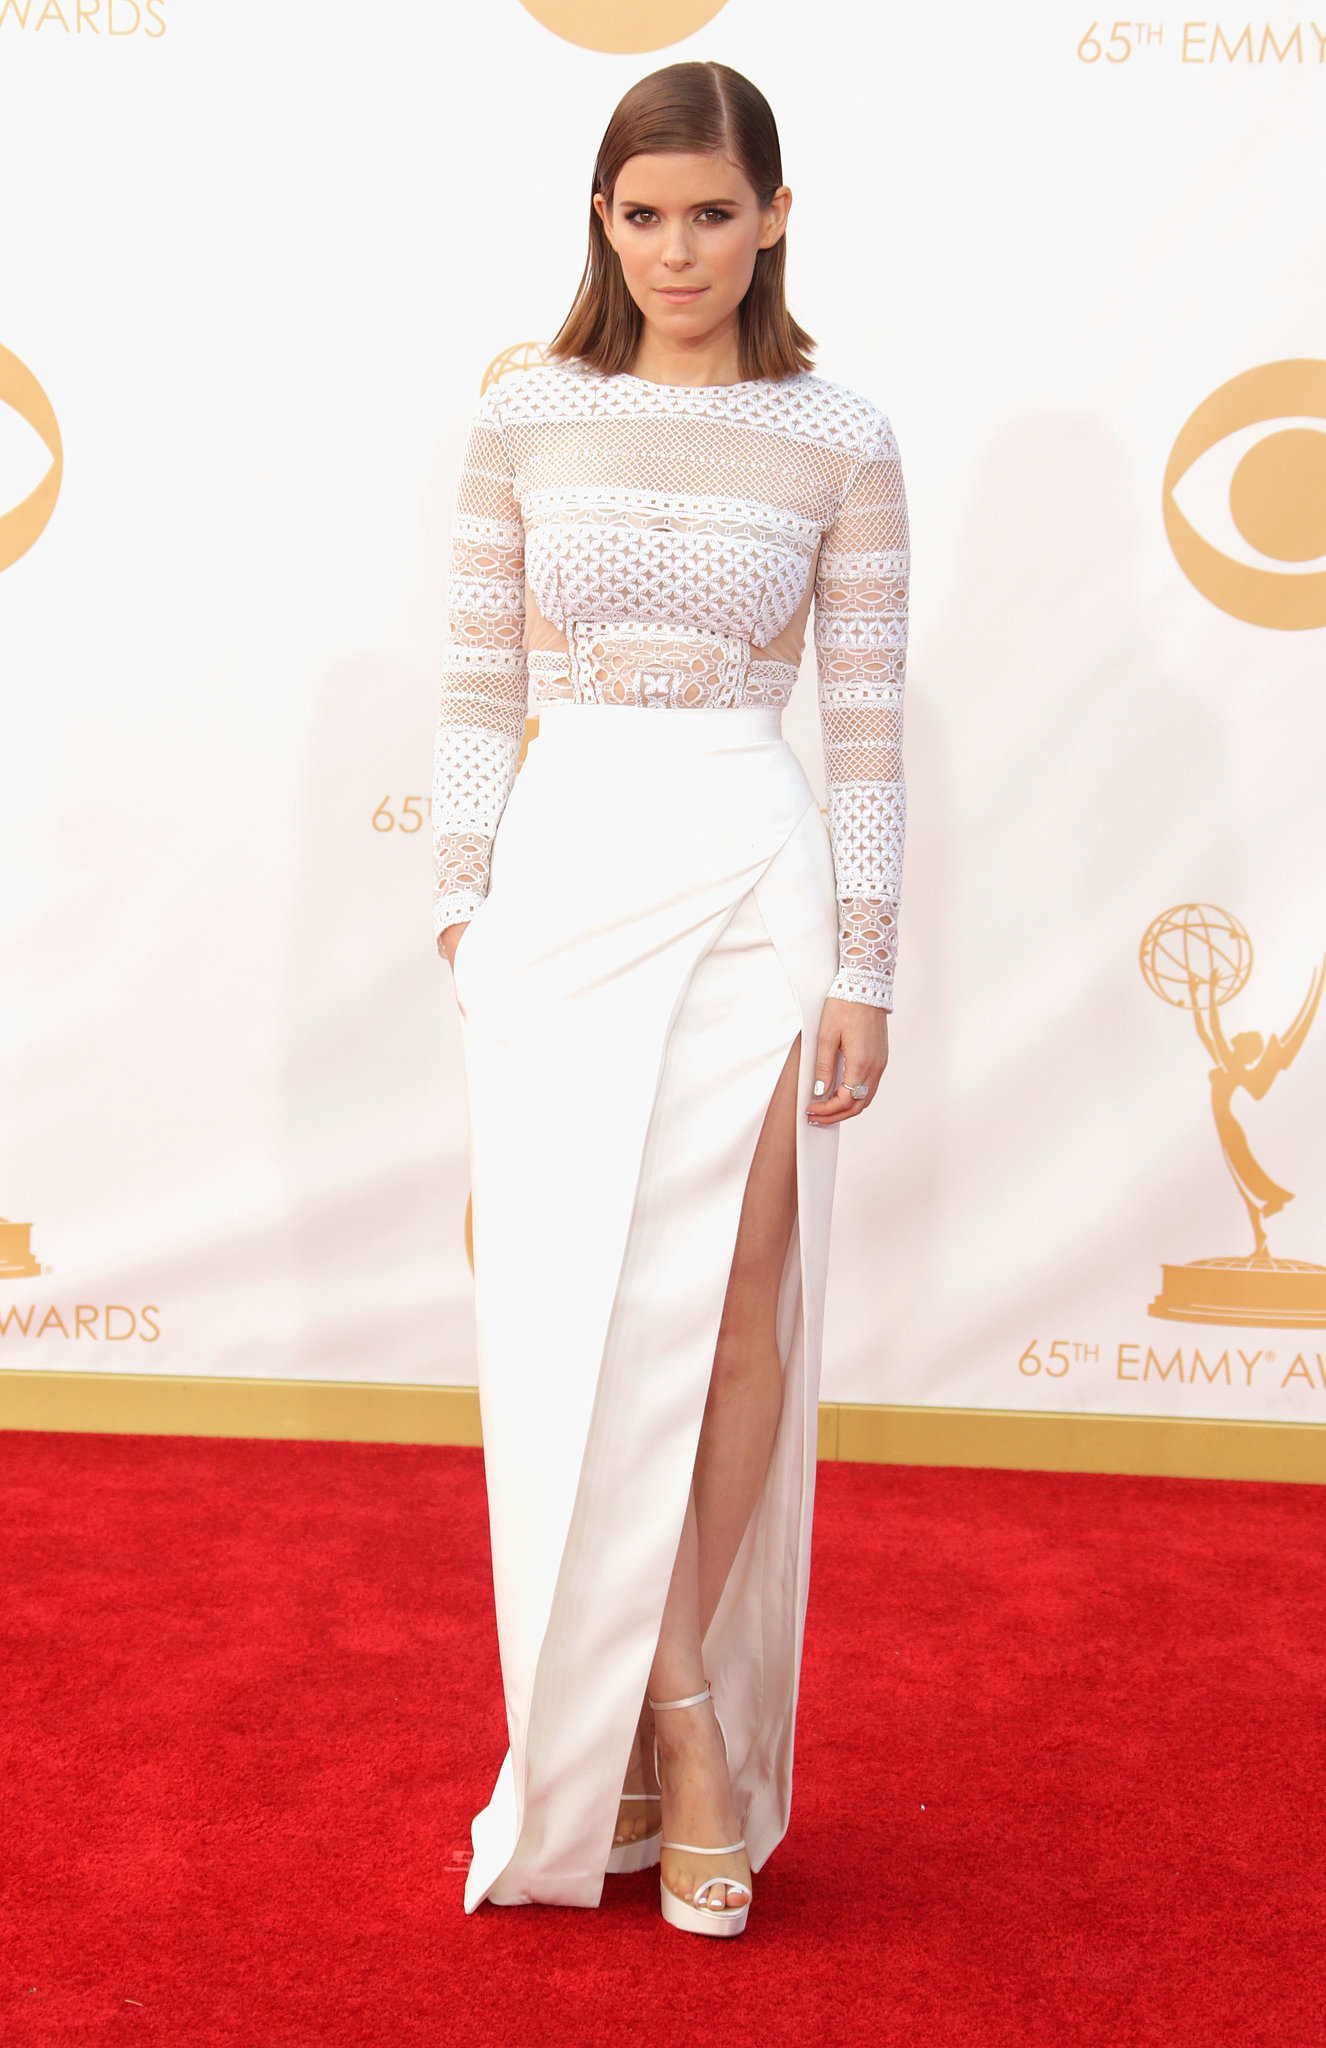 Kate Mara picked crisp white J. Mendel with a high slit that flashed